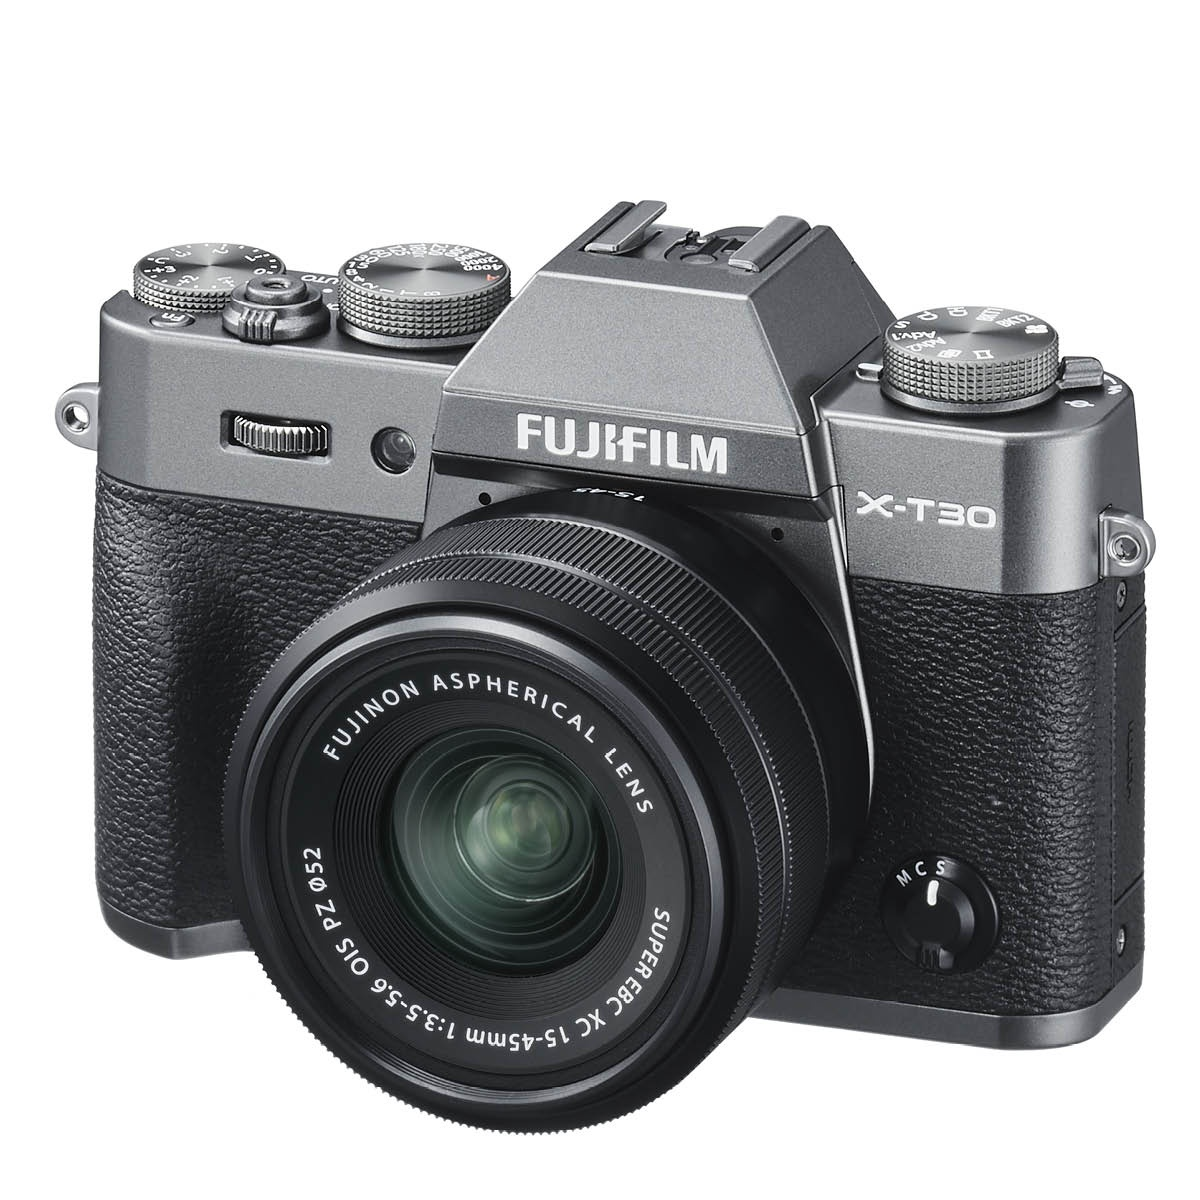 Fujifilm X T30 Kit mit 15-45 mm 1:3,5-5,6 Anthrazit